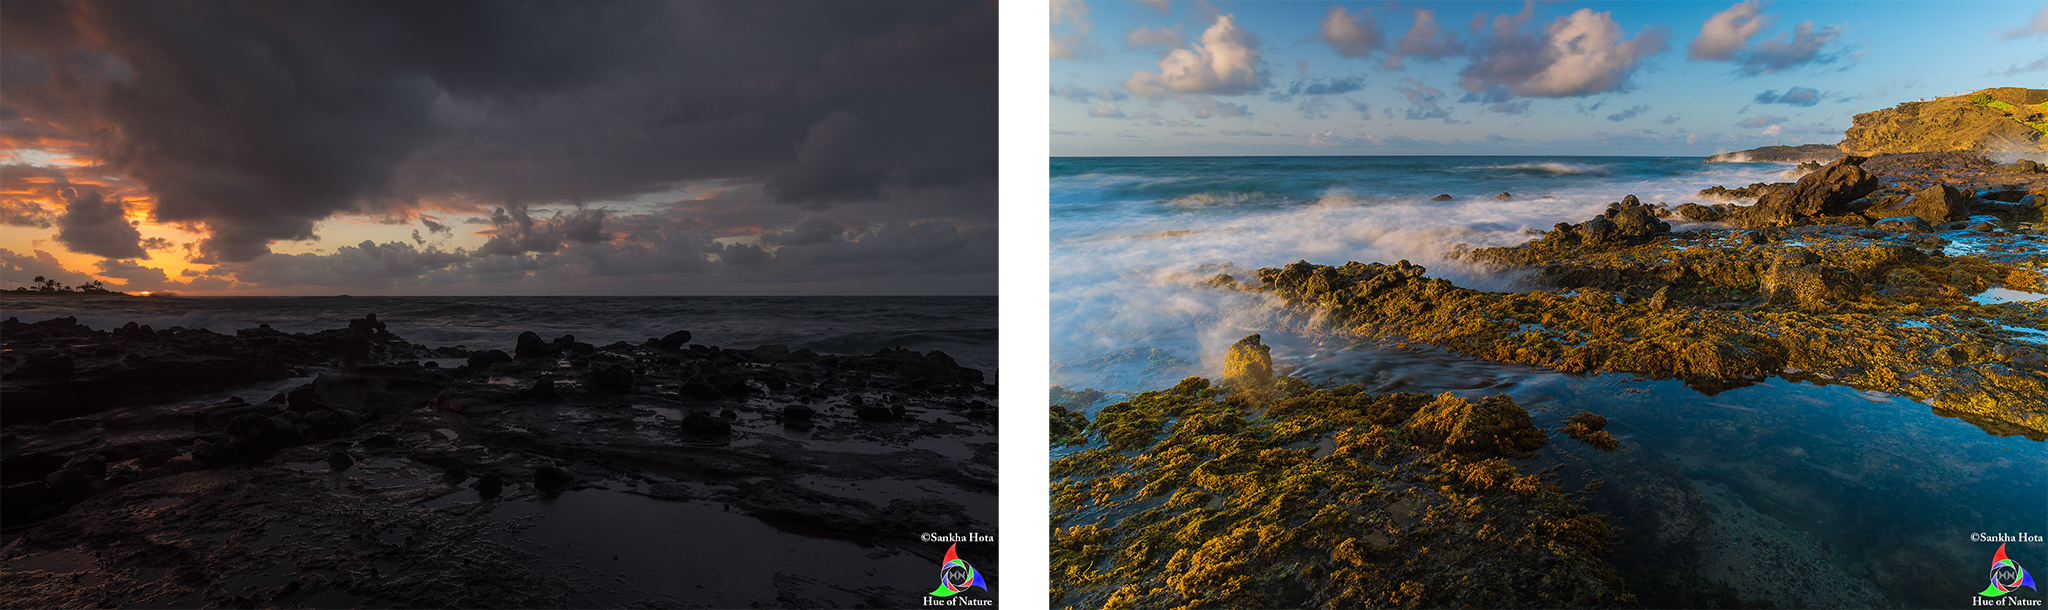 Sunrise (left) and after sunrise (right), Sandy Beach, Day 2